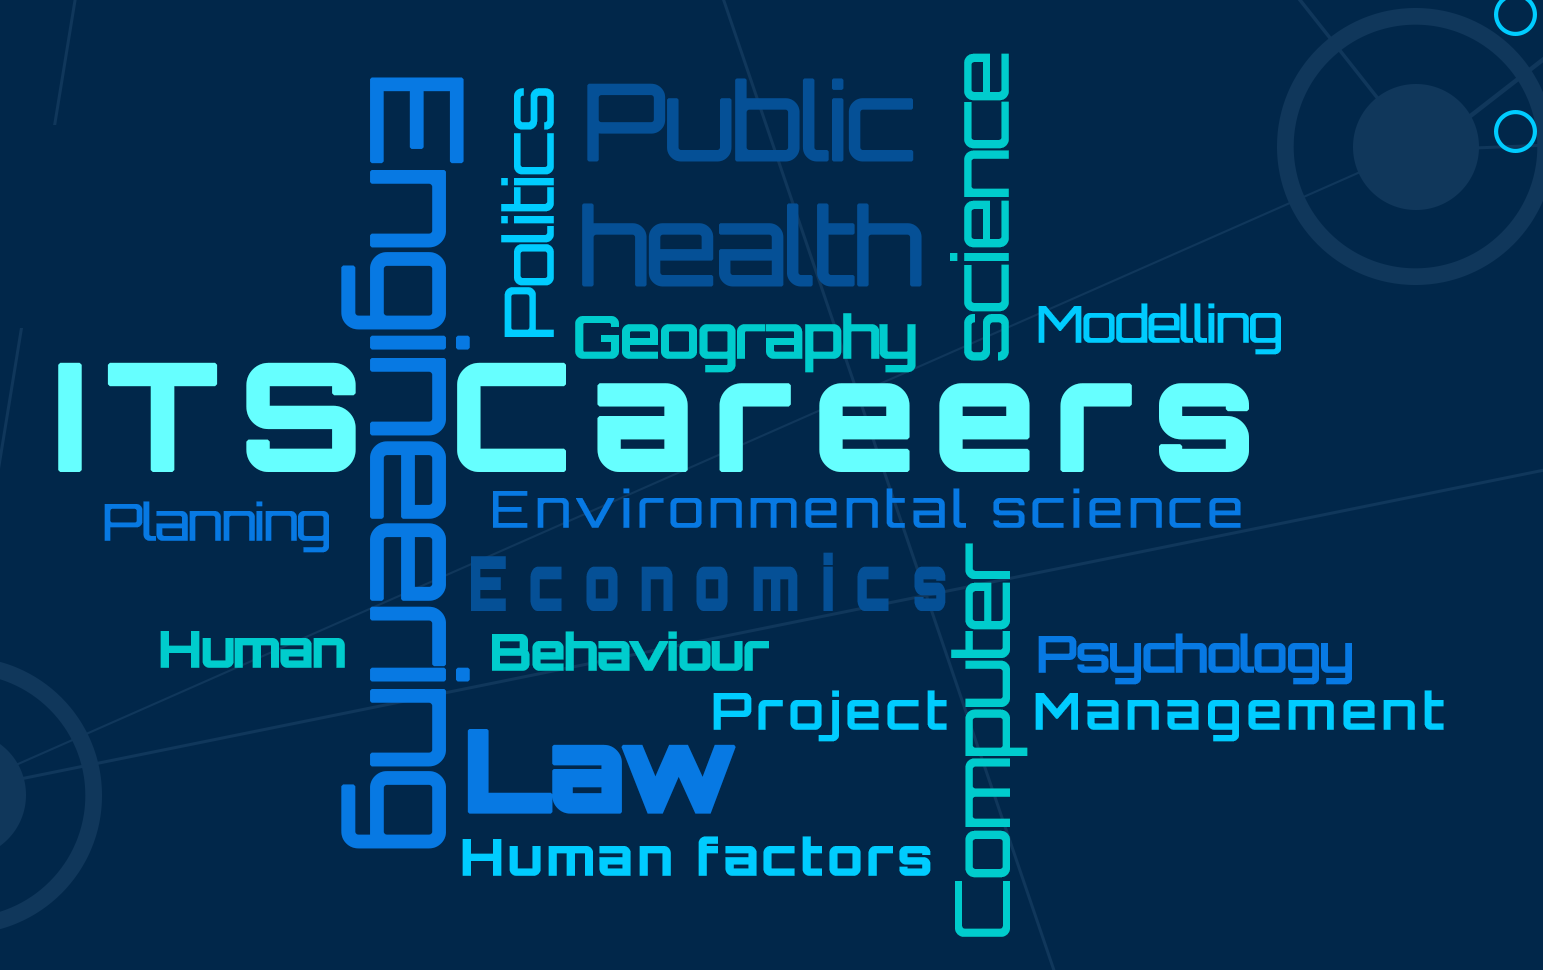 Intelligent Transport Careers wordcloud image